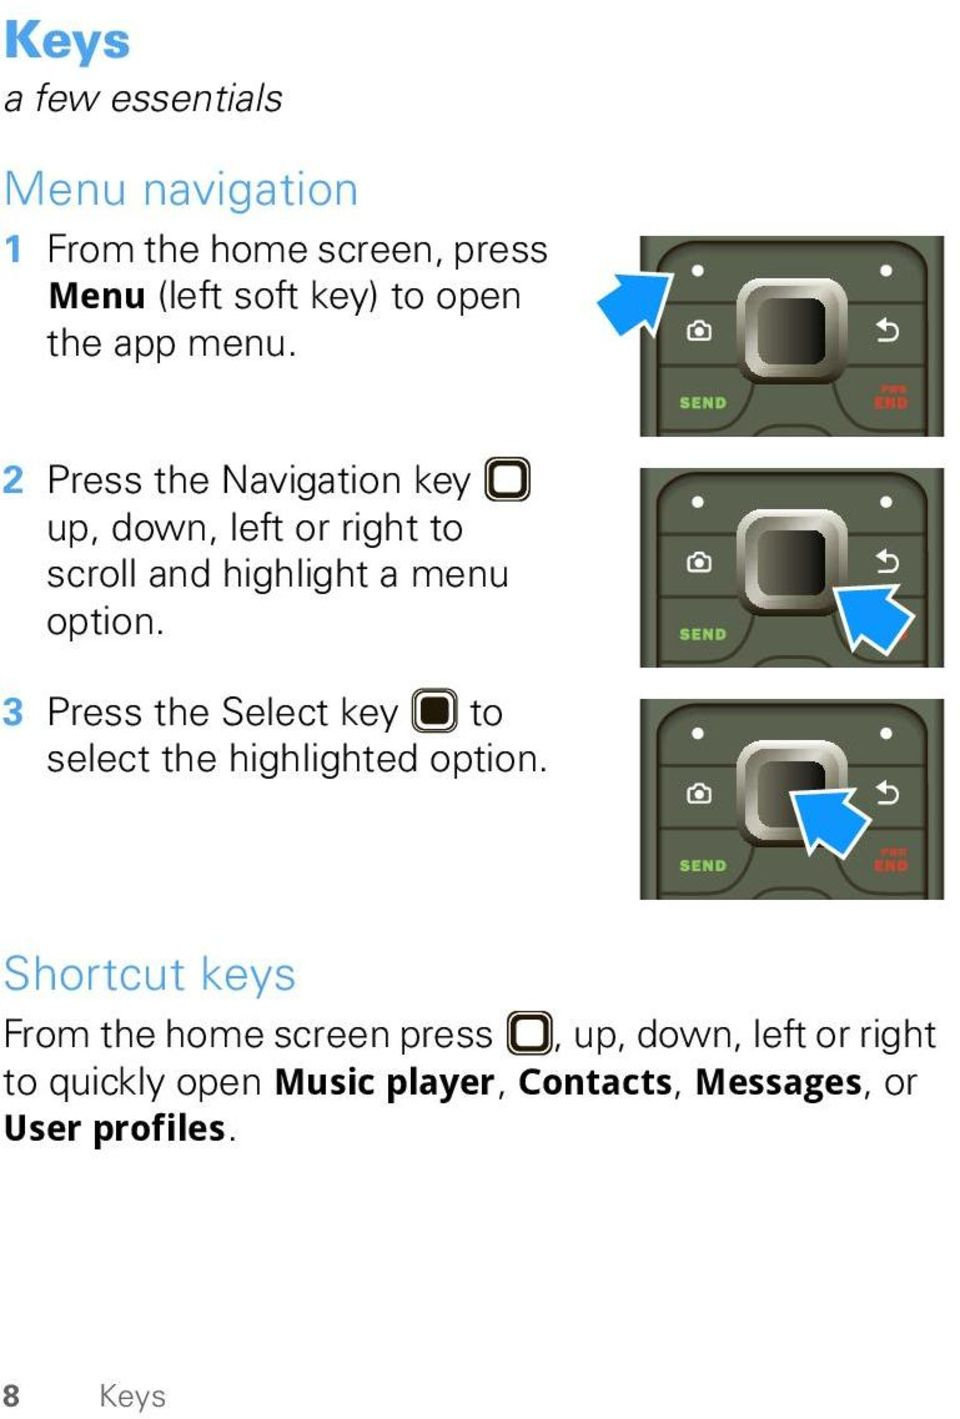 2 Press the Navigation key up, down, left or right to scroll and highlight a menu option.